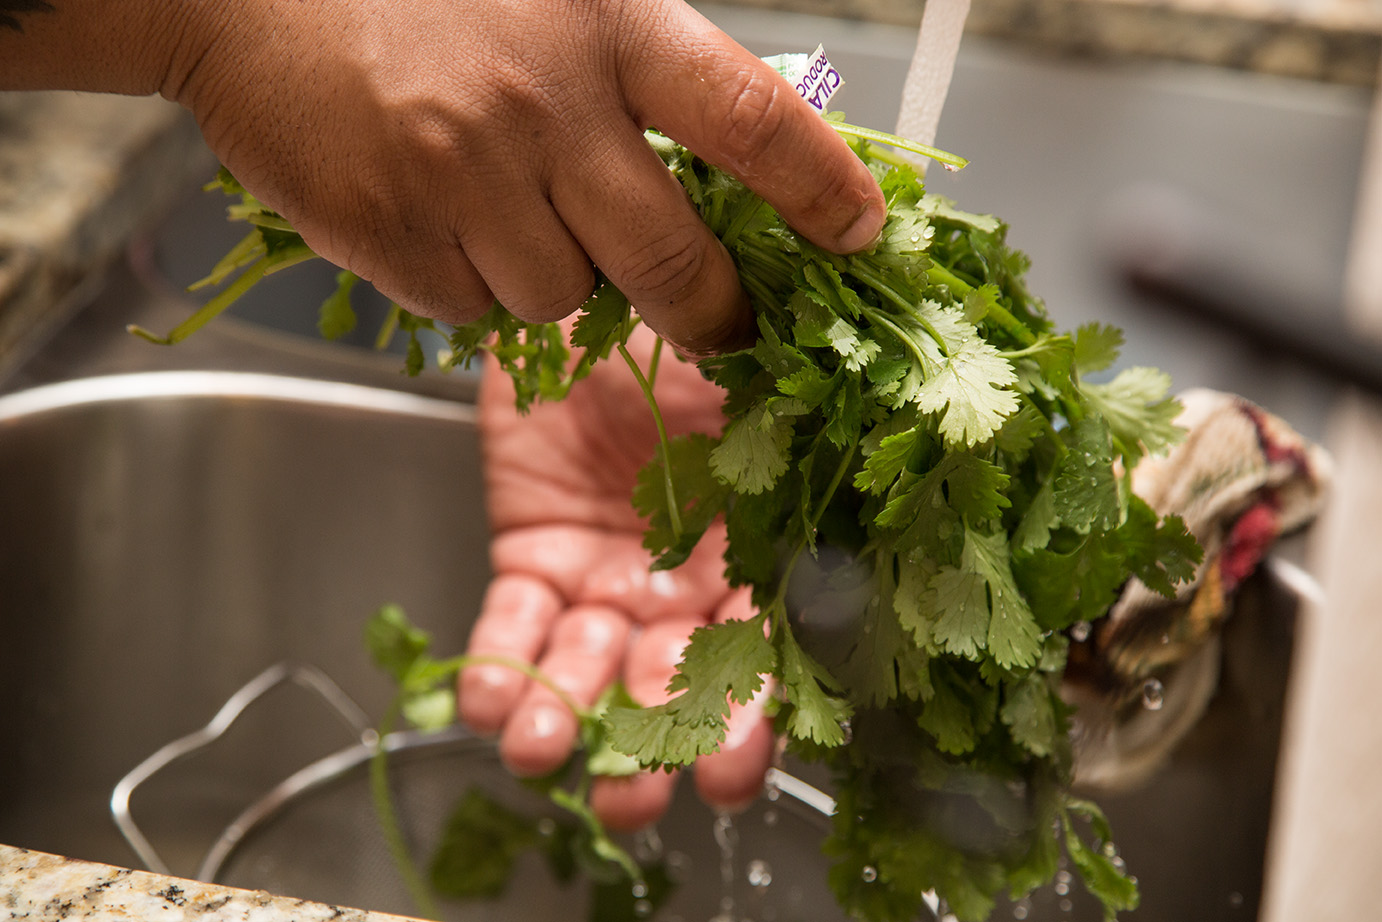 Washing the cilantro.